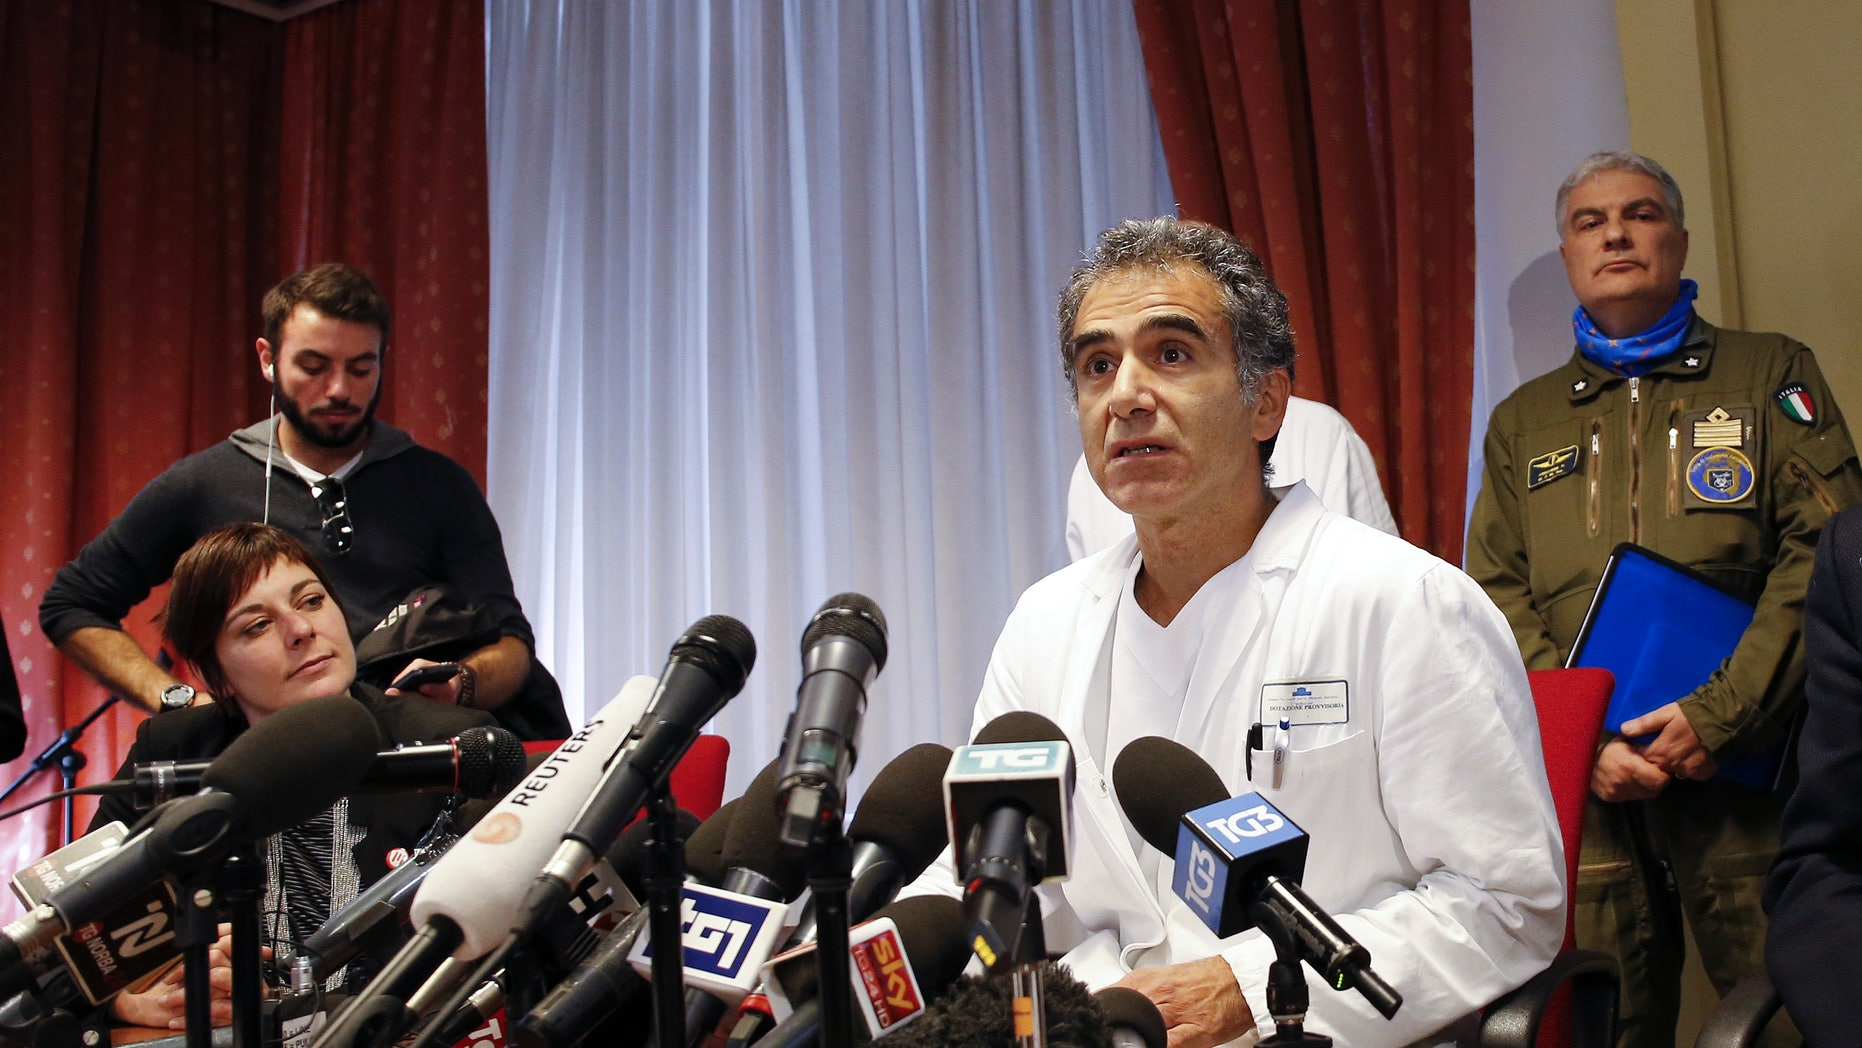 Doctor Emanuele Nicastri speaks during a news conference at the Spallanzani hospital in Rome November 25, 2014. REUTERS/Giampiero Sposito